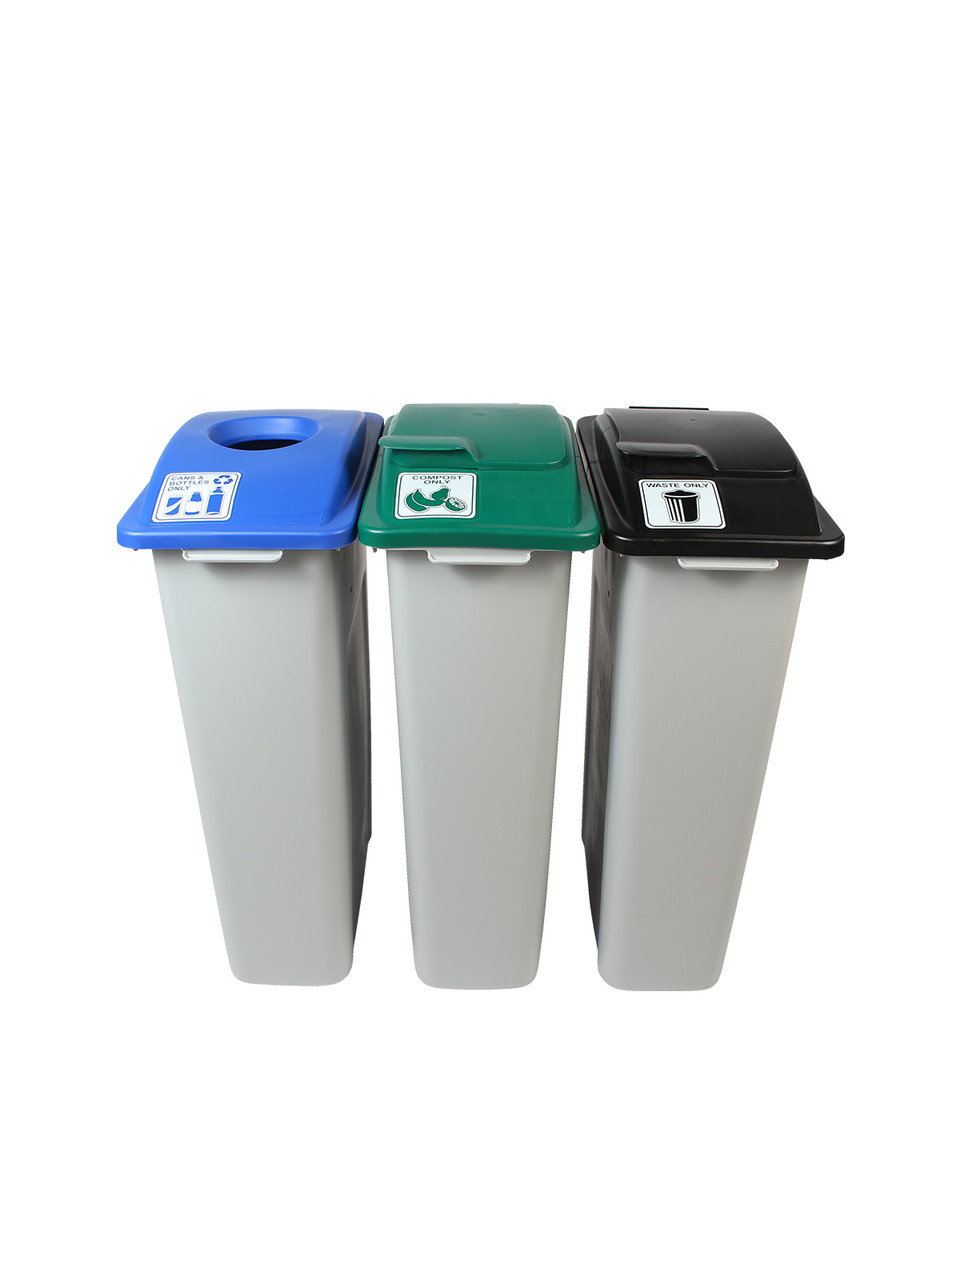 69 Gallon Simple Sort Skinny Recycle Bin Center 8105058-155 (Cans, Compost Lift Lid, Waste Lift Lid)